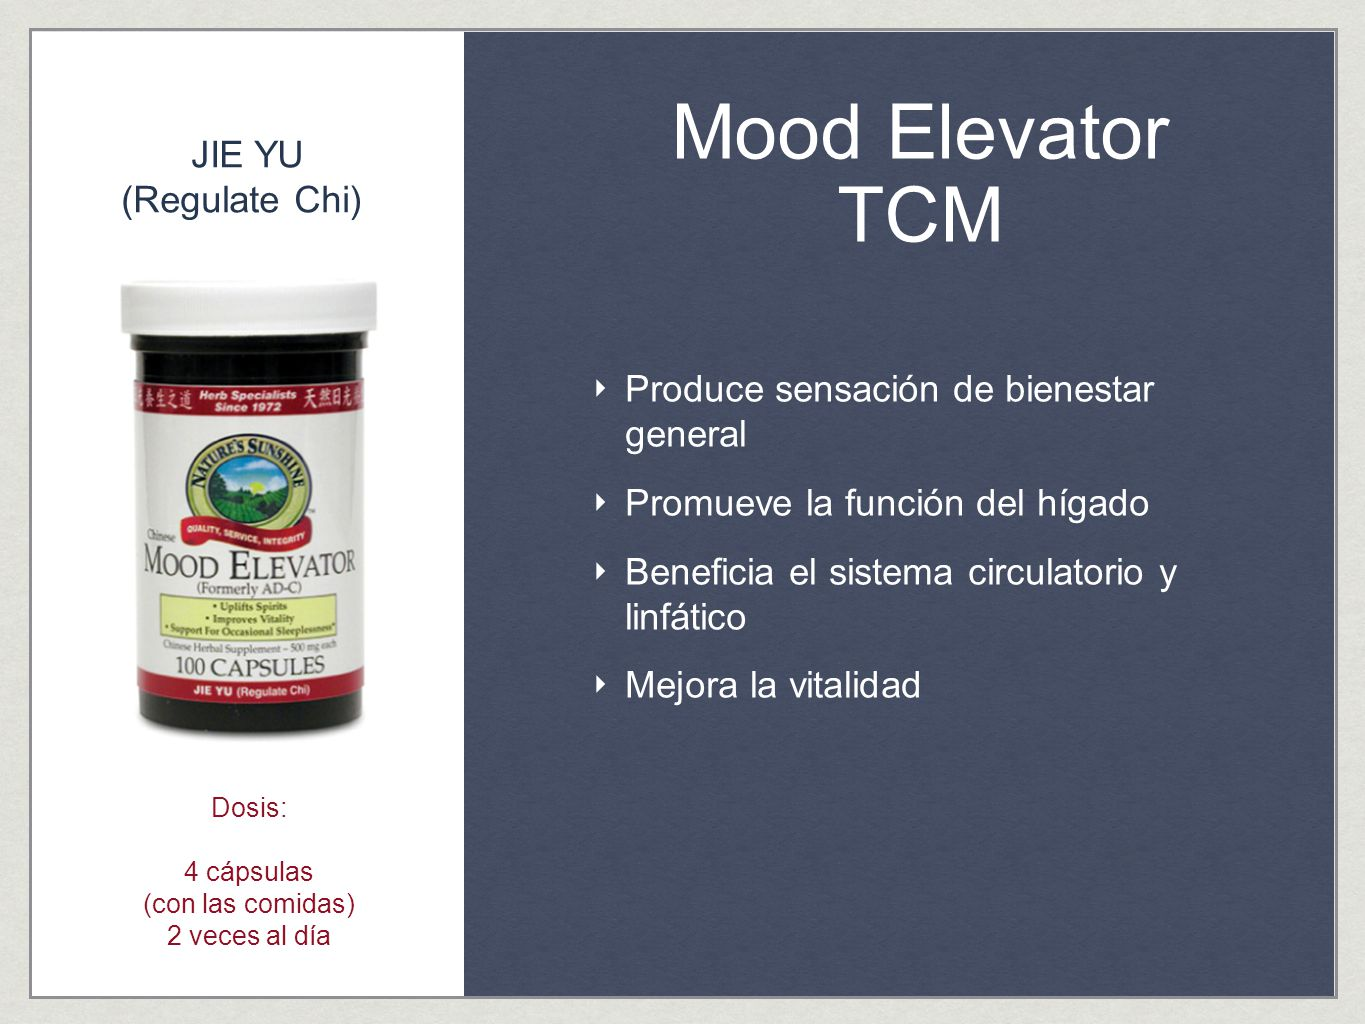 Mood Elevator TCM JIE YU (Regulate Chi)